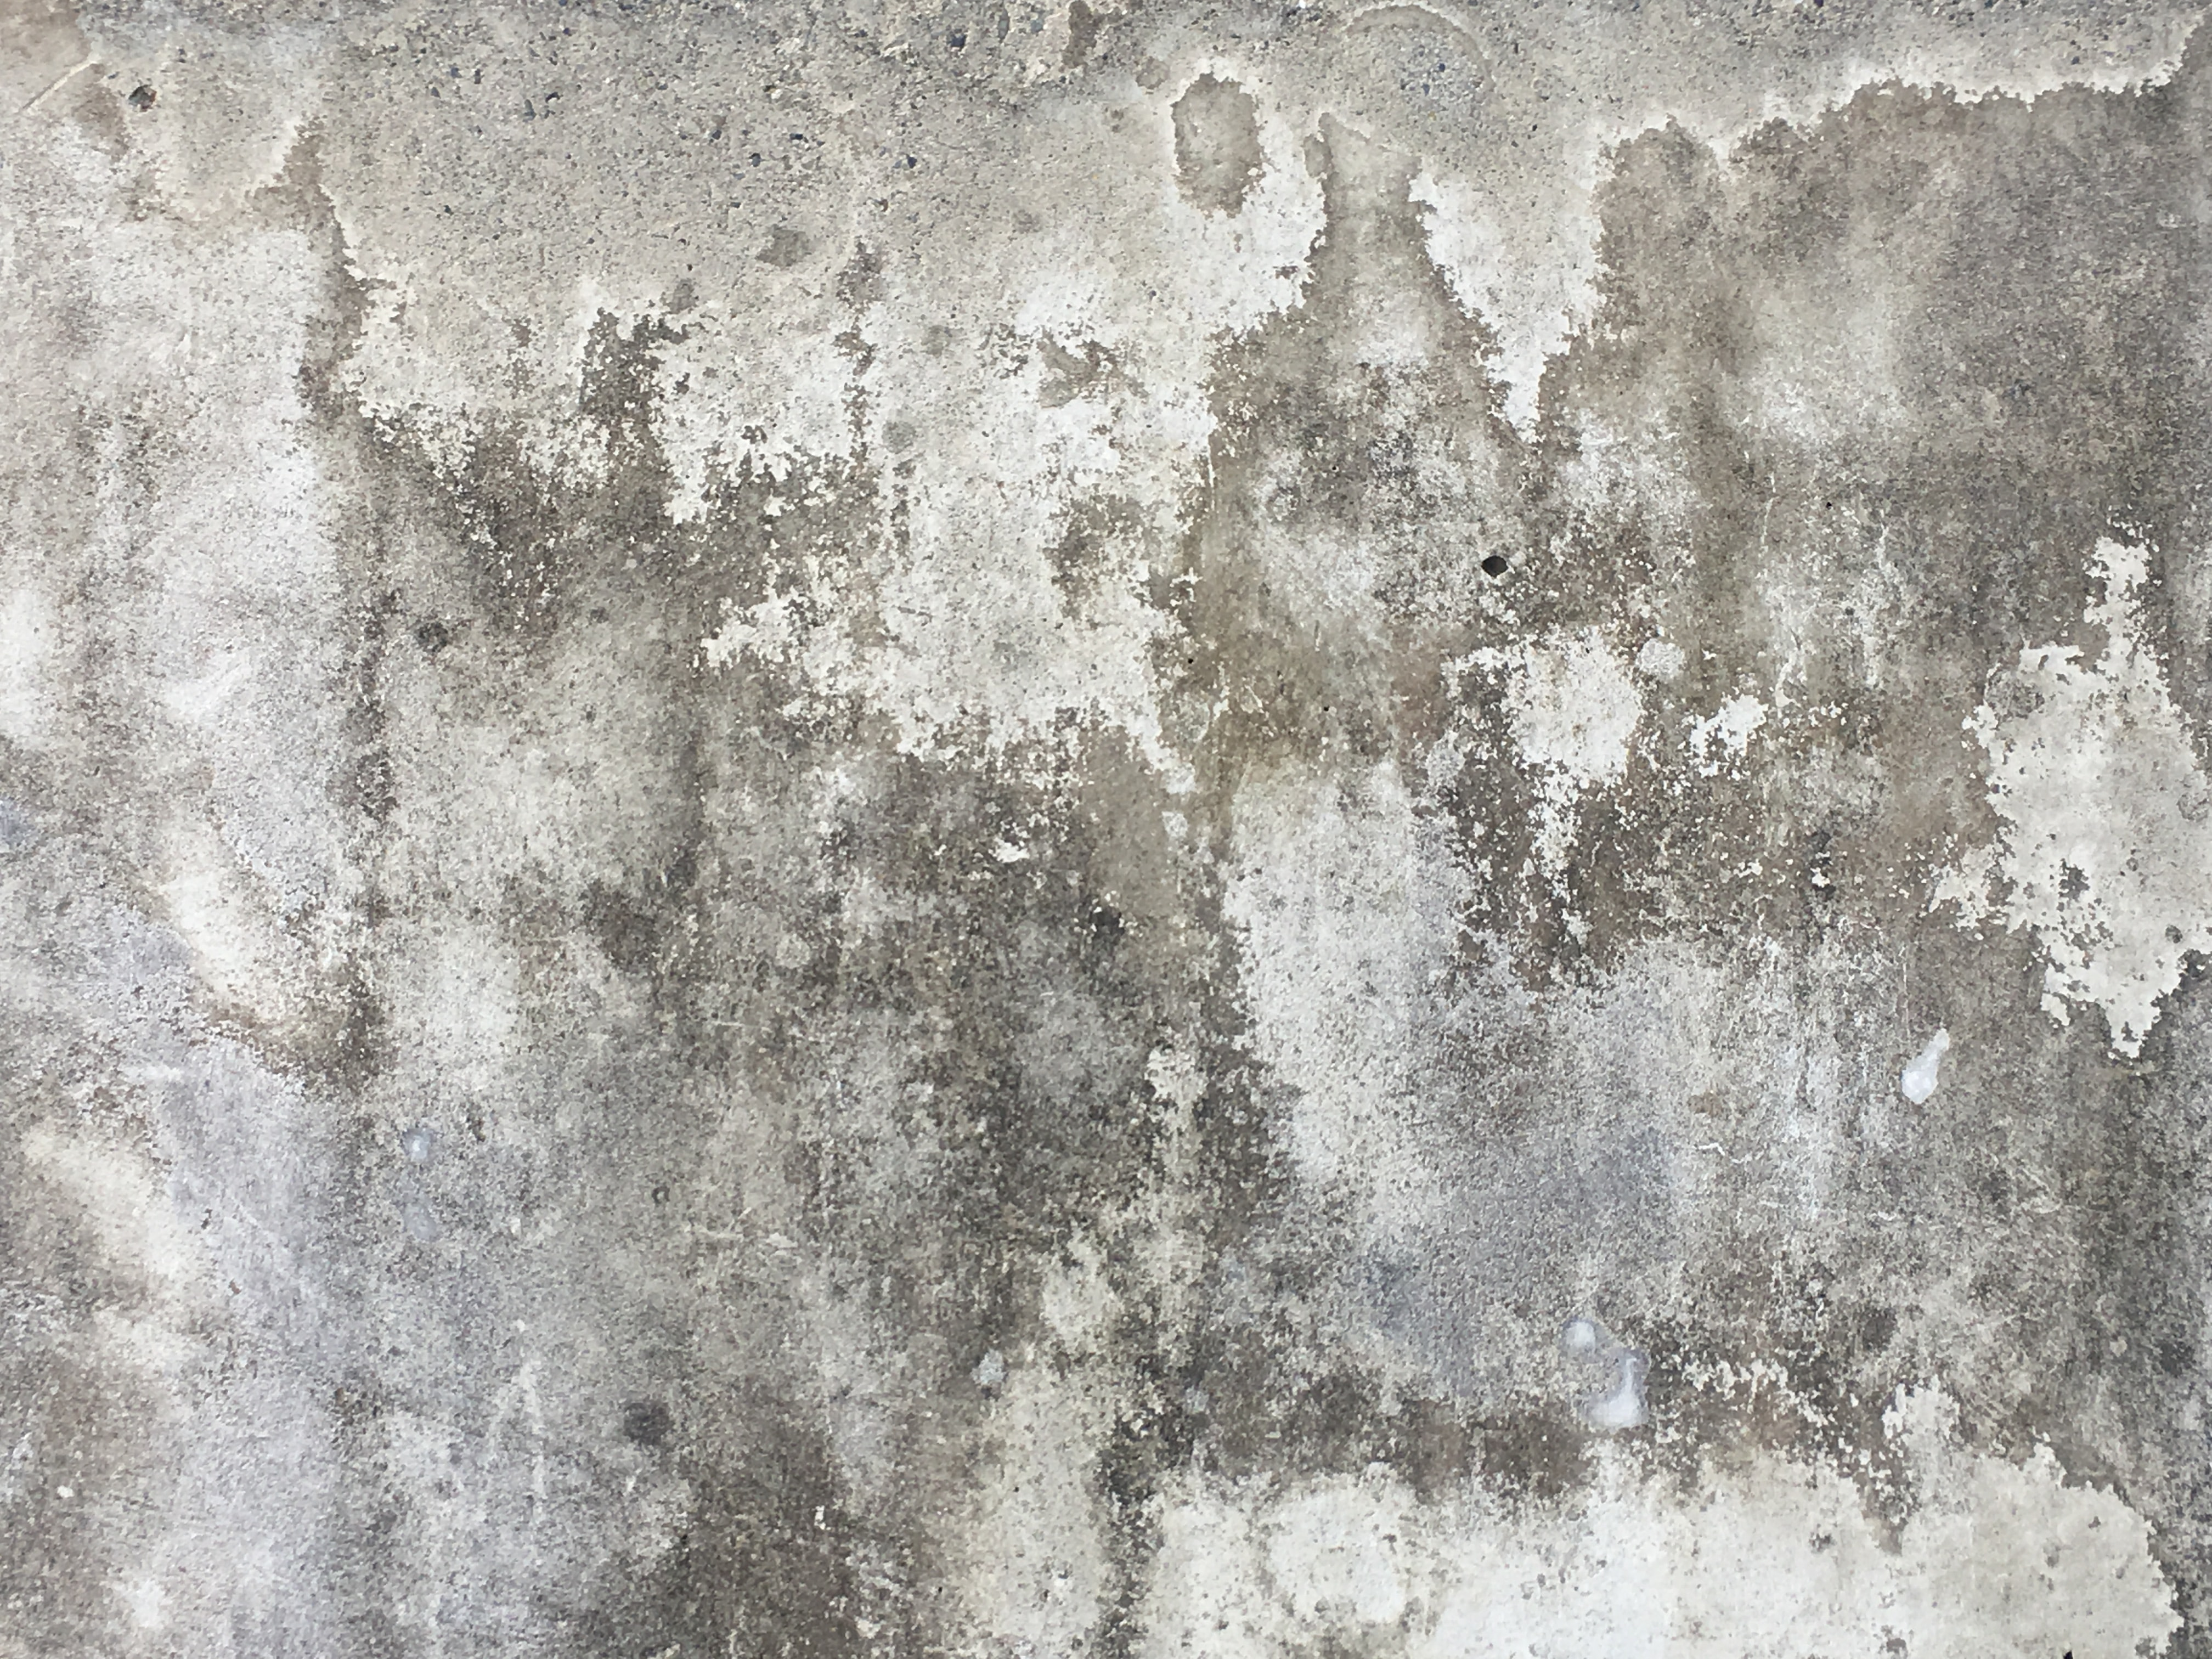 gray concrete surface